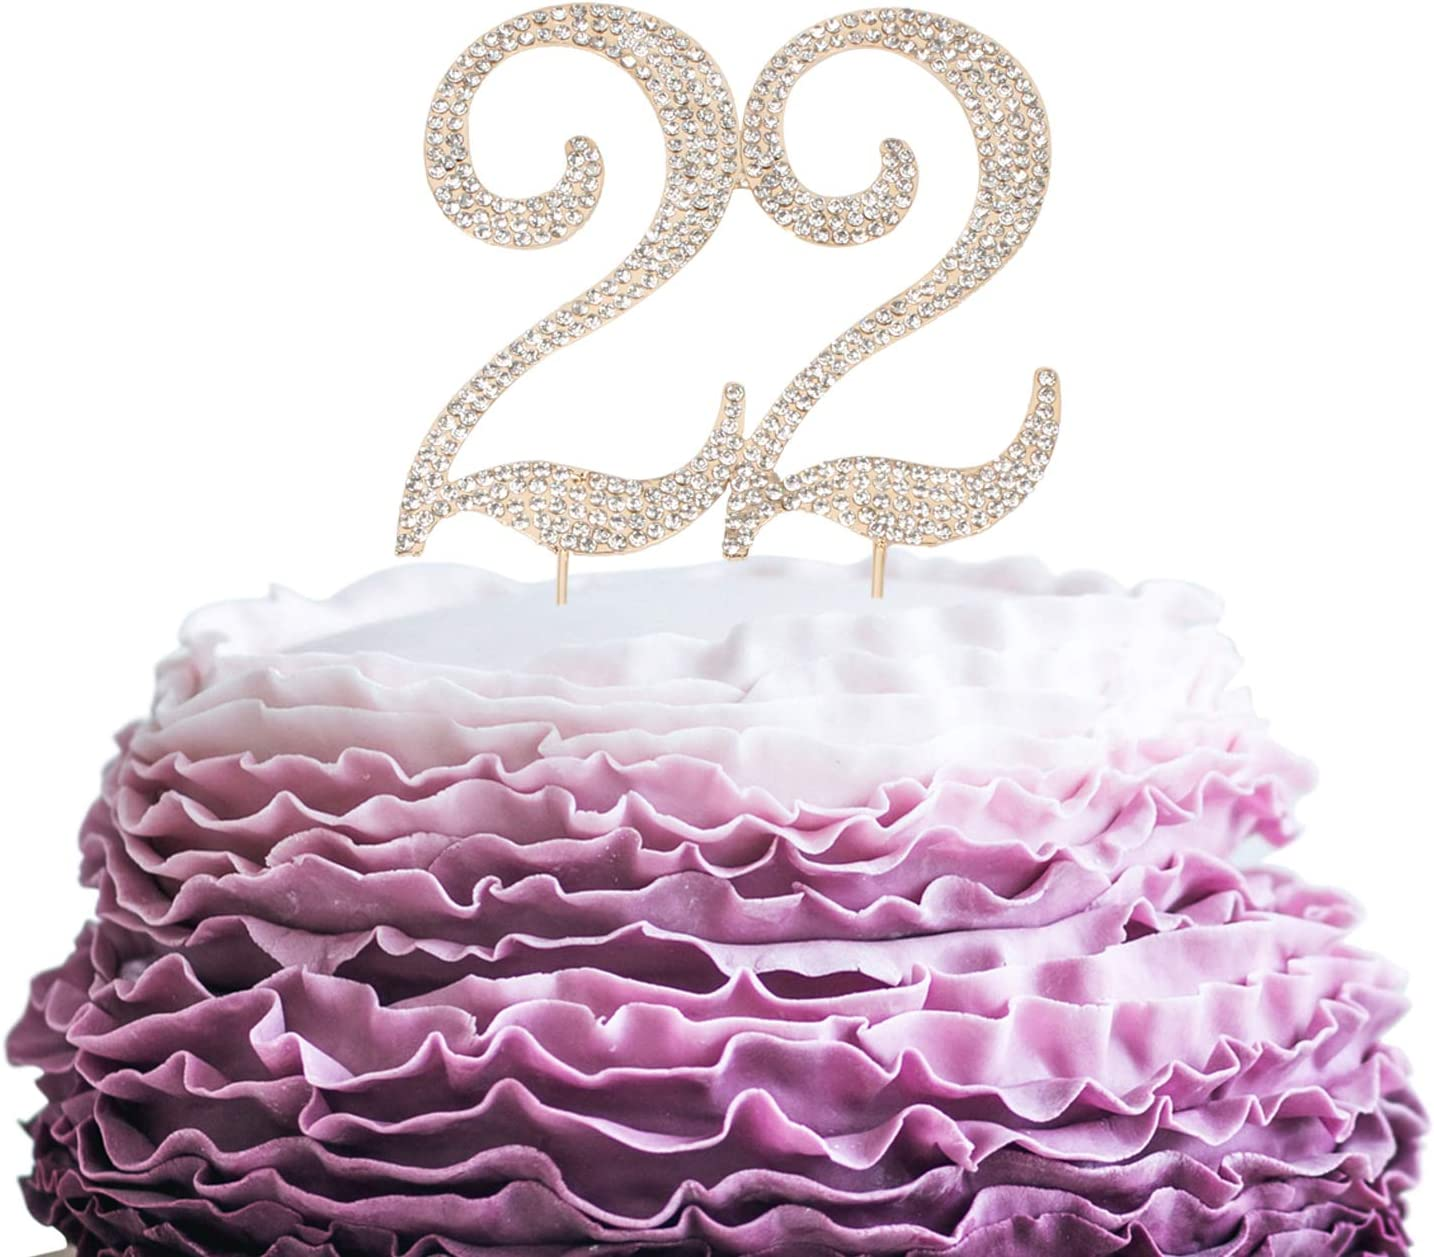 LINGPAR 22 Years Birthday Outlet SALE Cake Topper Best - Rhinest New San Diego Mall Crystal